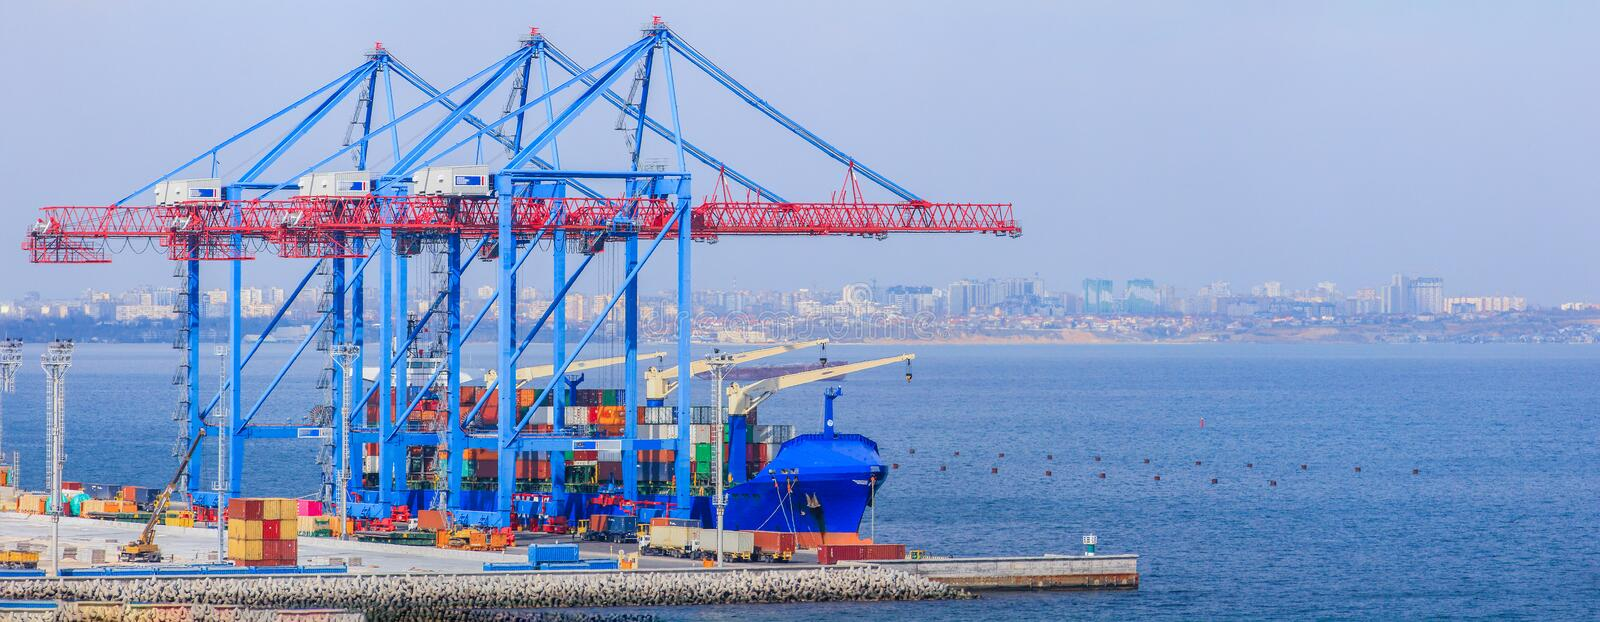 Work of the container terminal for shipping goods royalty free stock photo